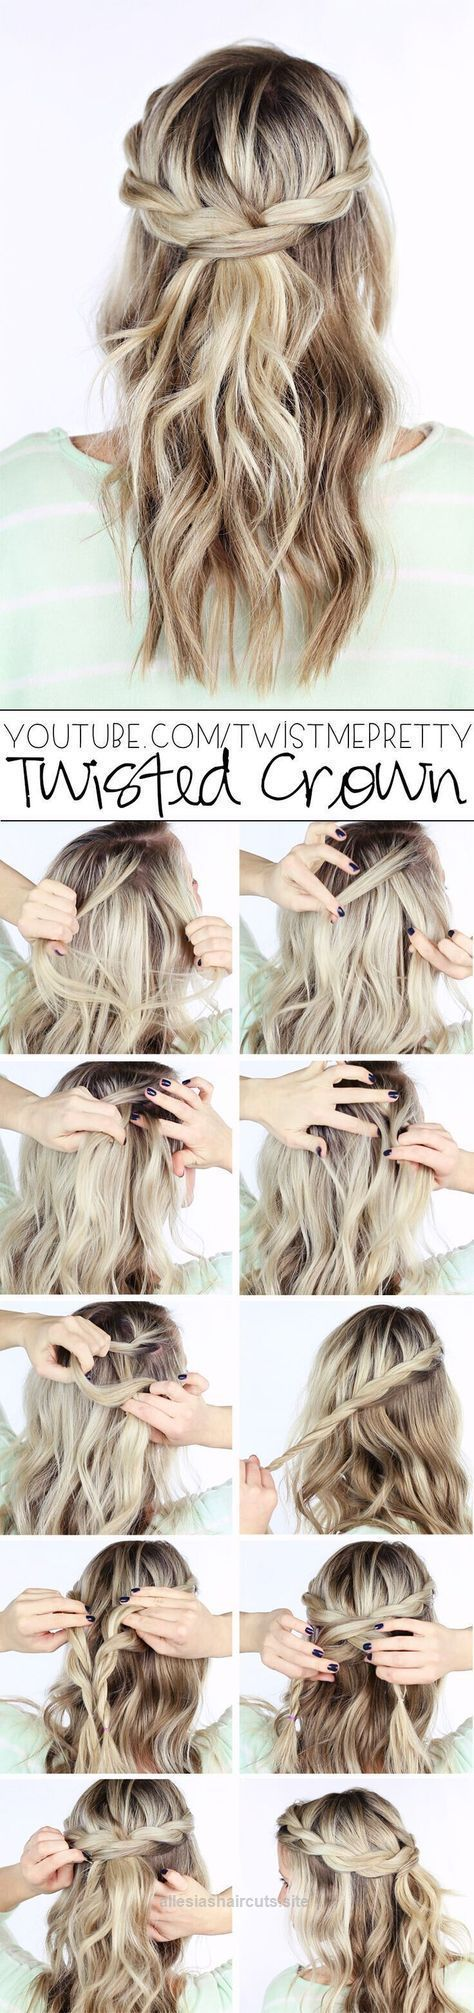 Wonderful DIY Wedding Hairstyle – Twisted crown braid half up half down hairstyle  The post  DIY Wedding Hairstyle – Twisted crown braid half up half down hairstyle…  appeared first on  Haircuts  ..